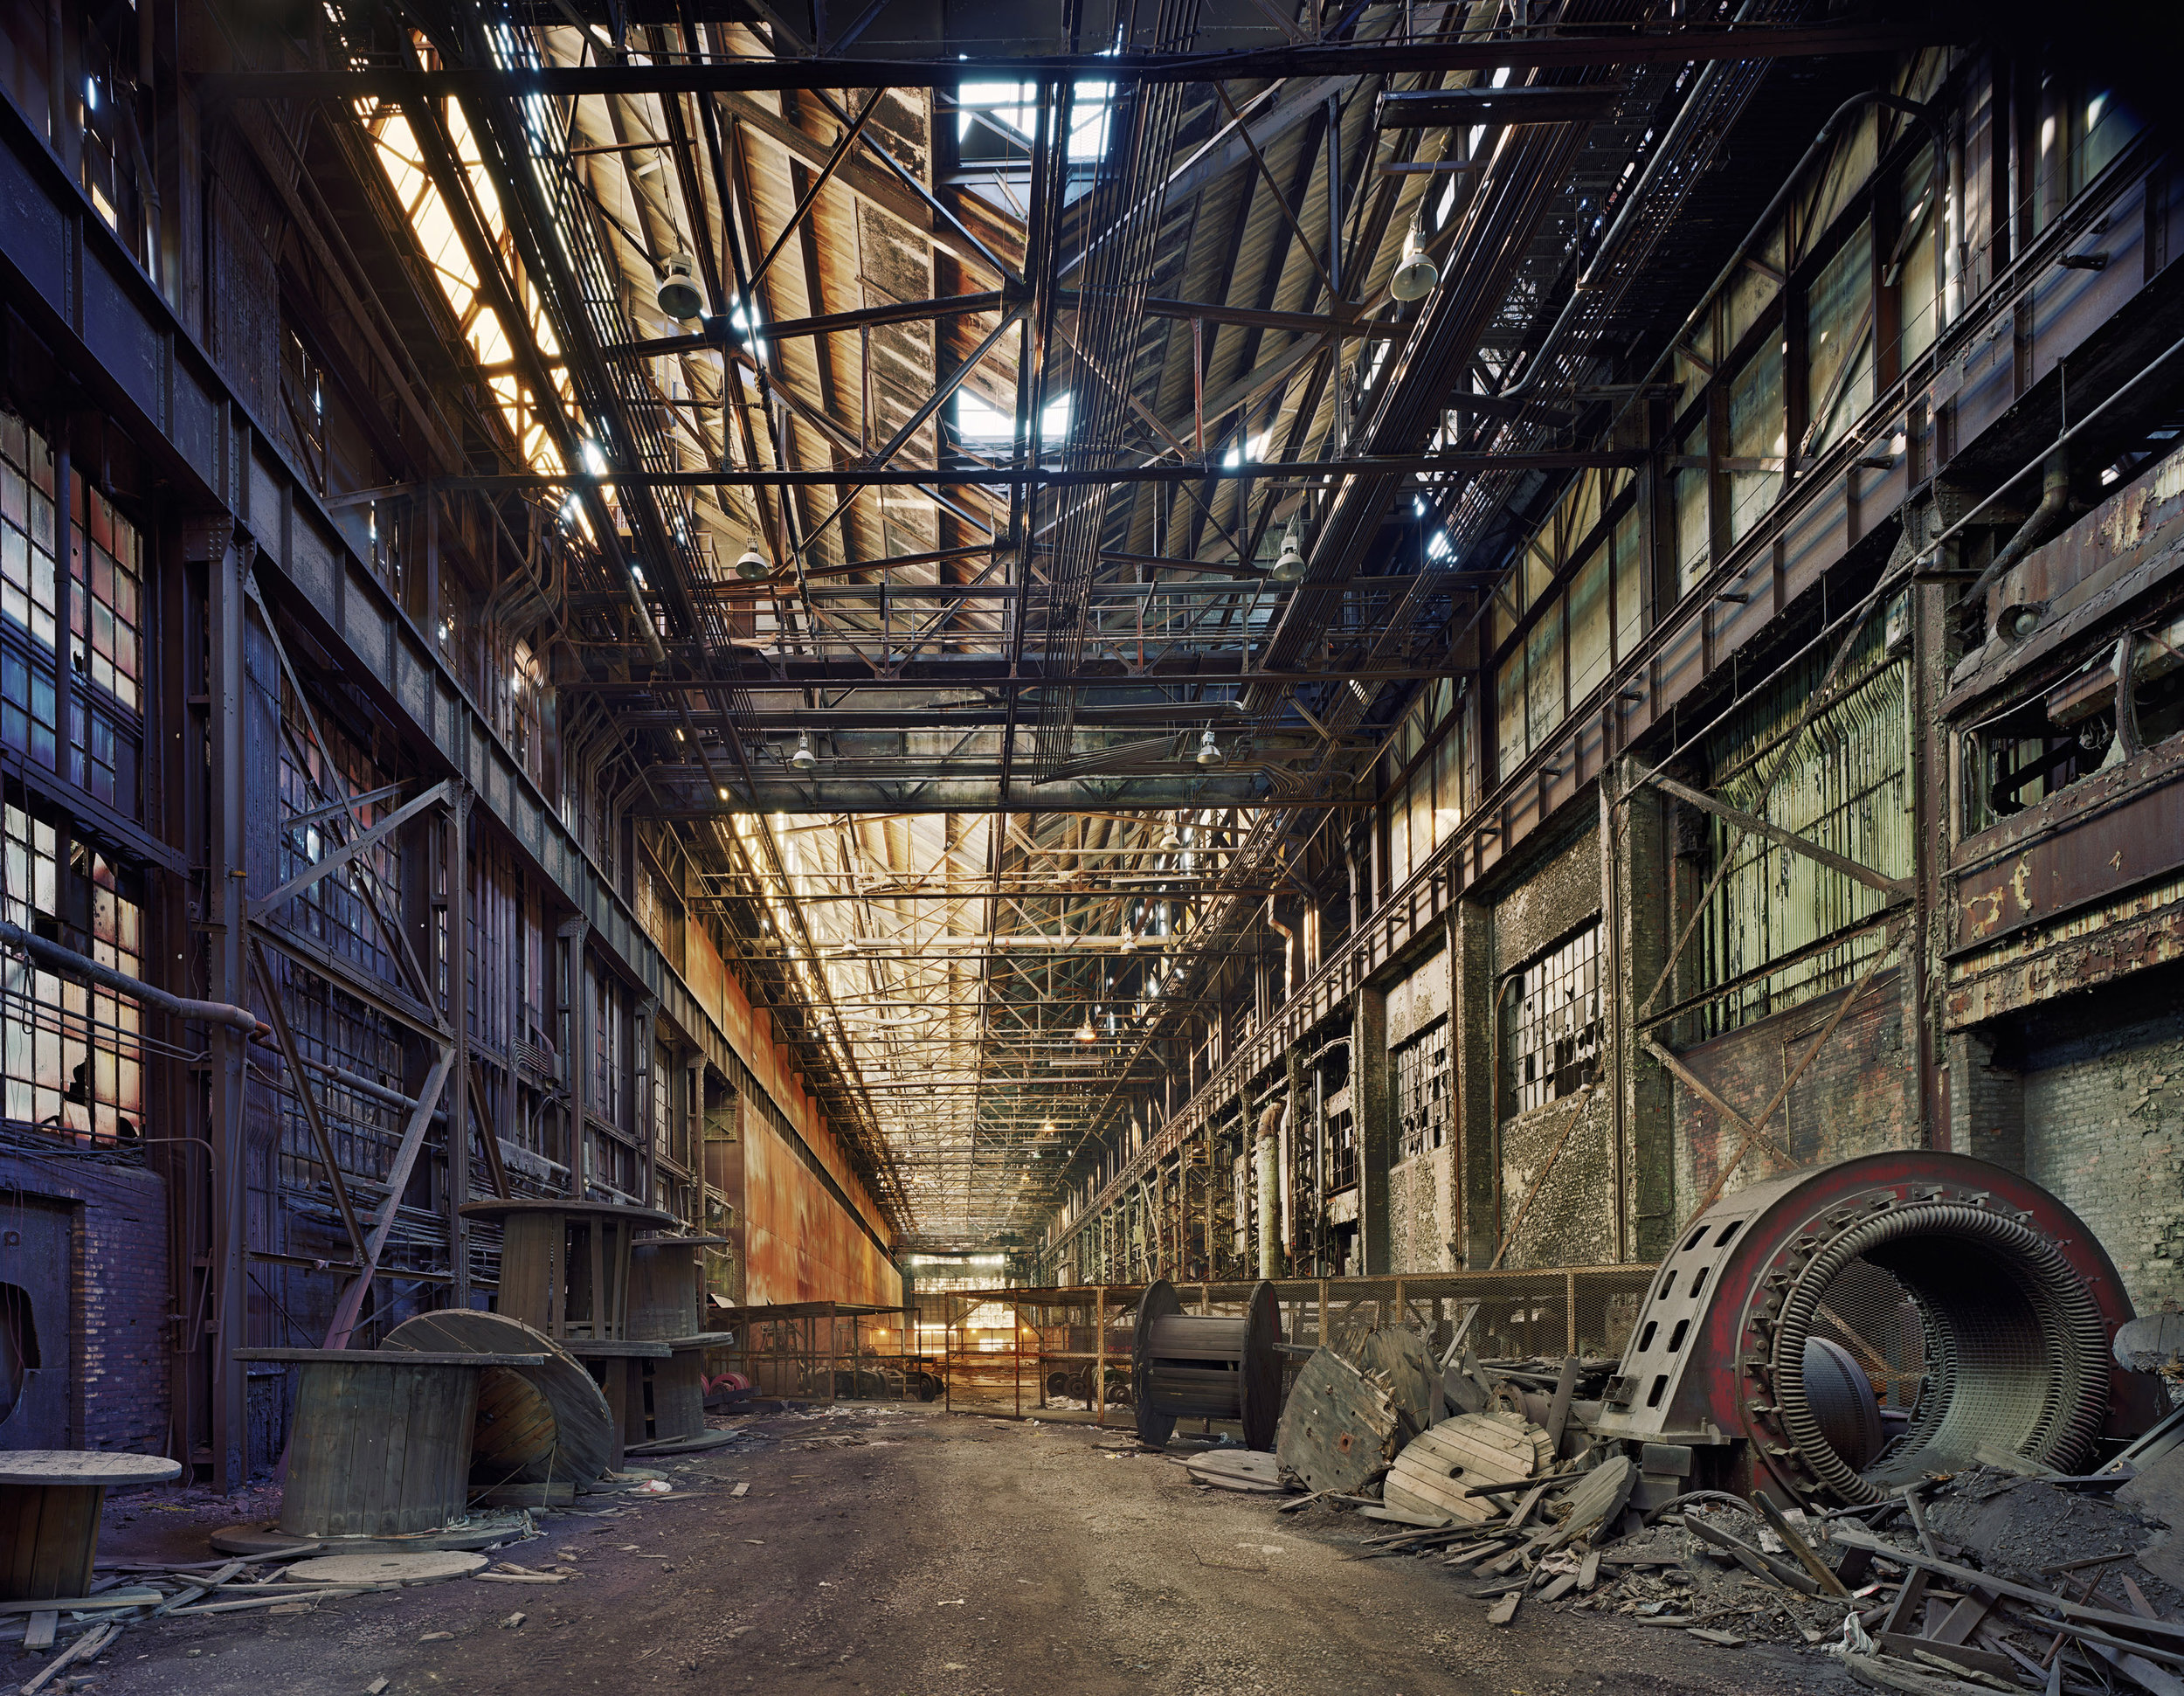 Rolling hall, Ford Motor Company river rouge complex - Color chromogenic printSigned edition of 5, printed 2015Sheet 51 x 61 cm, Image 43 x 53 cm (16.8 x 21.0 inches)$5500